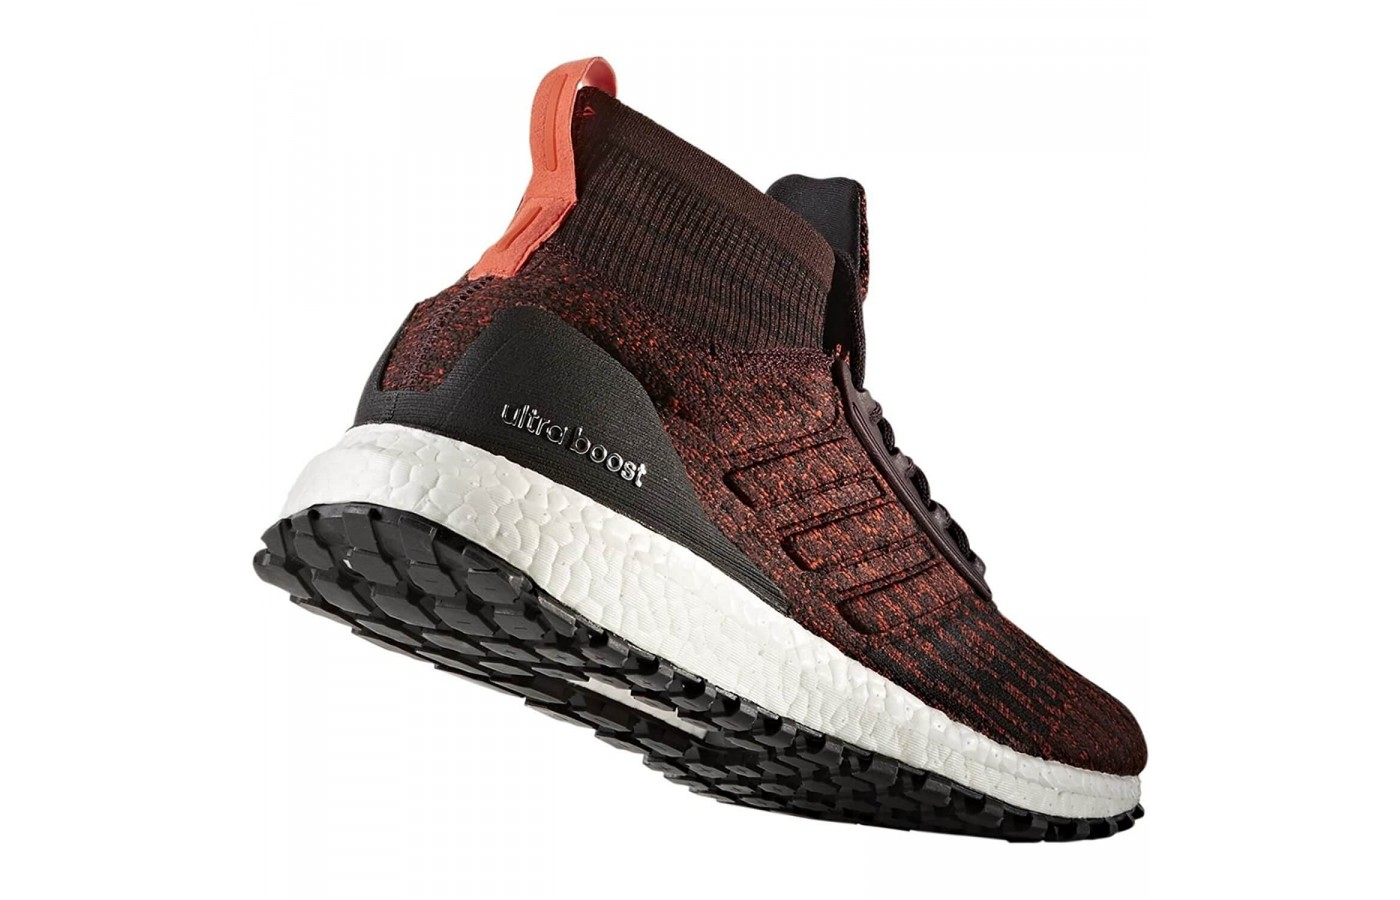 6c852232db84a Adidas Ultraboost All Terrain - Buy or Not in May 2019